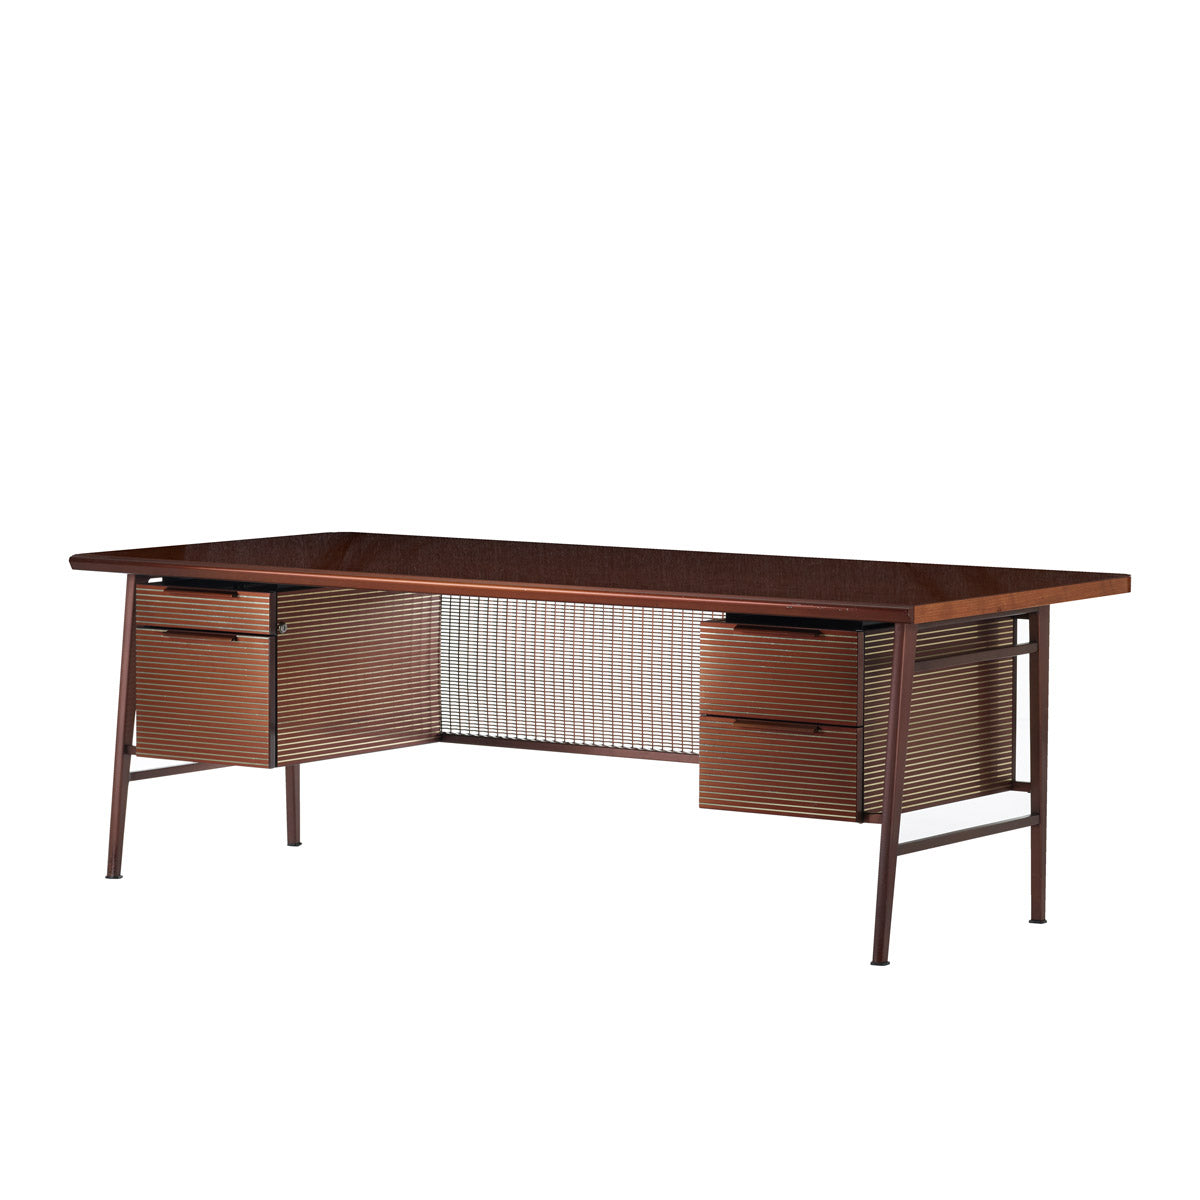 Gordon Bunshaft Desk for the Reynolds Metals Company - The Exchange Int